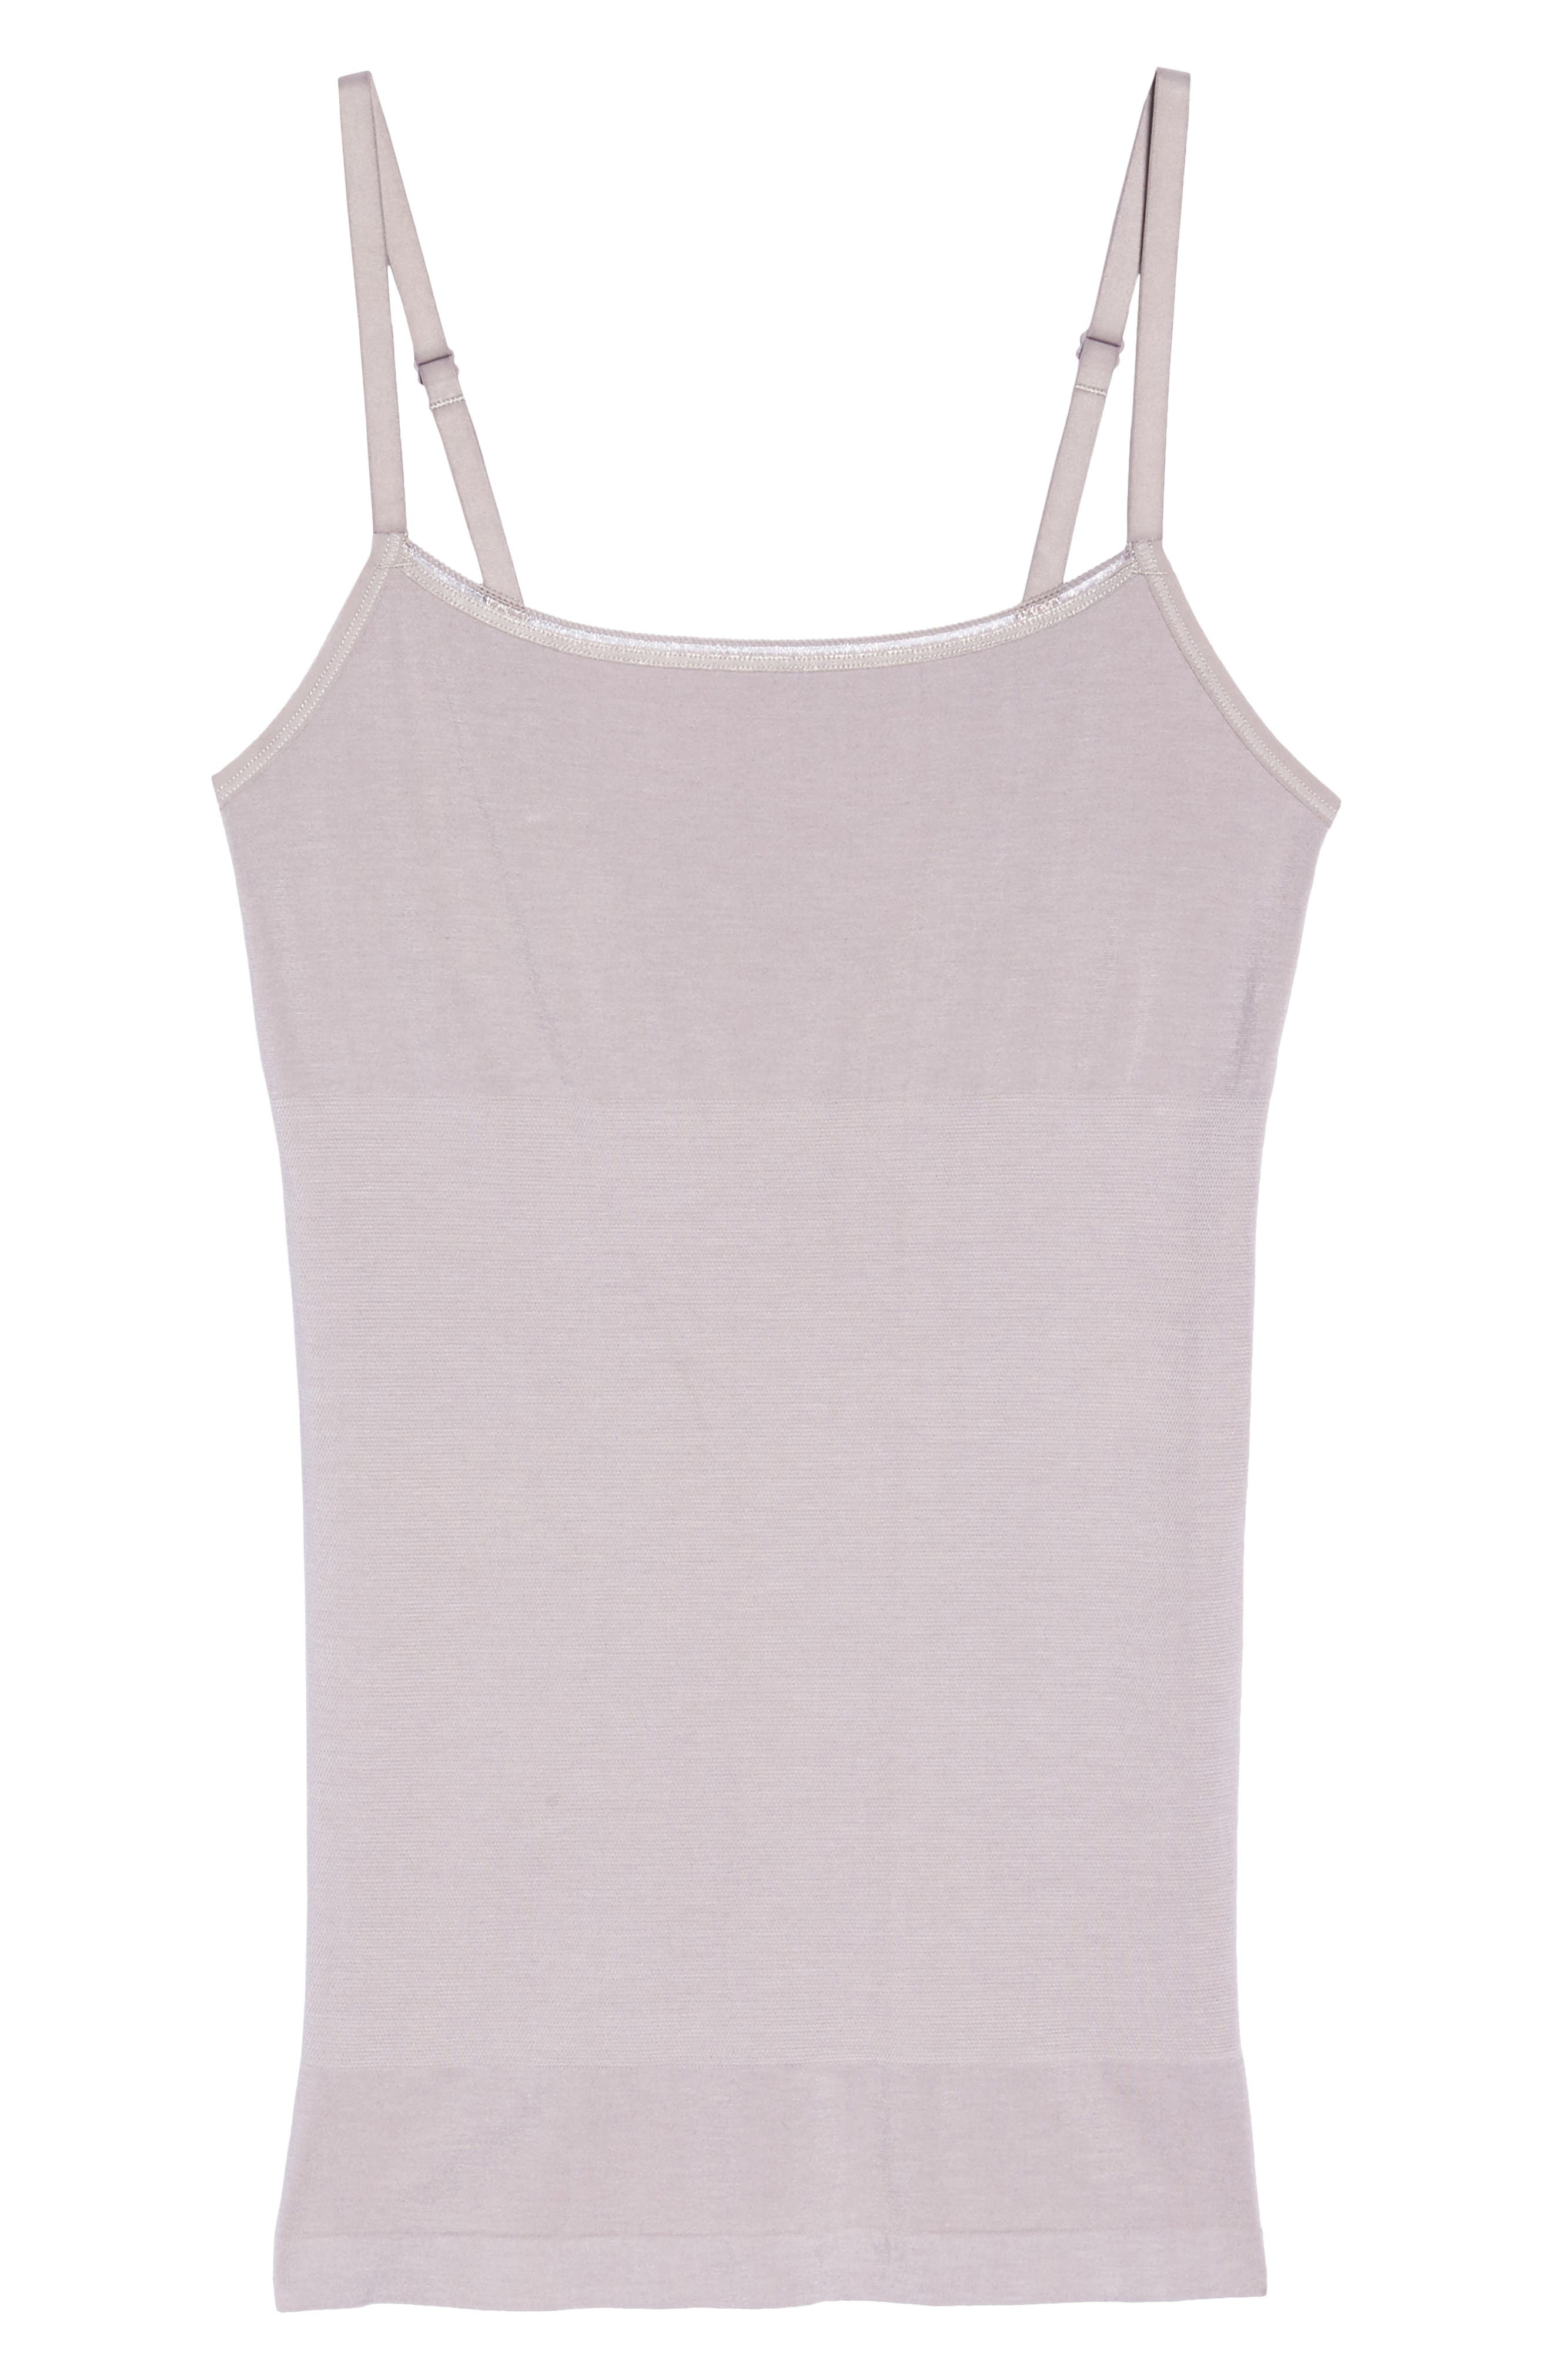 Seamlessly Shaped Convertible Camisole,                             Alternate thumbnail 8, color,                             Gull Gray